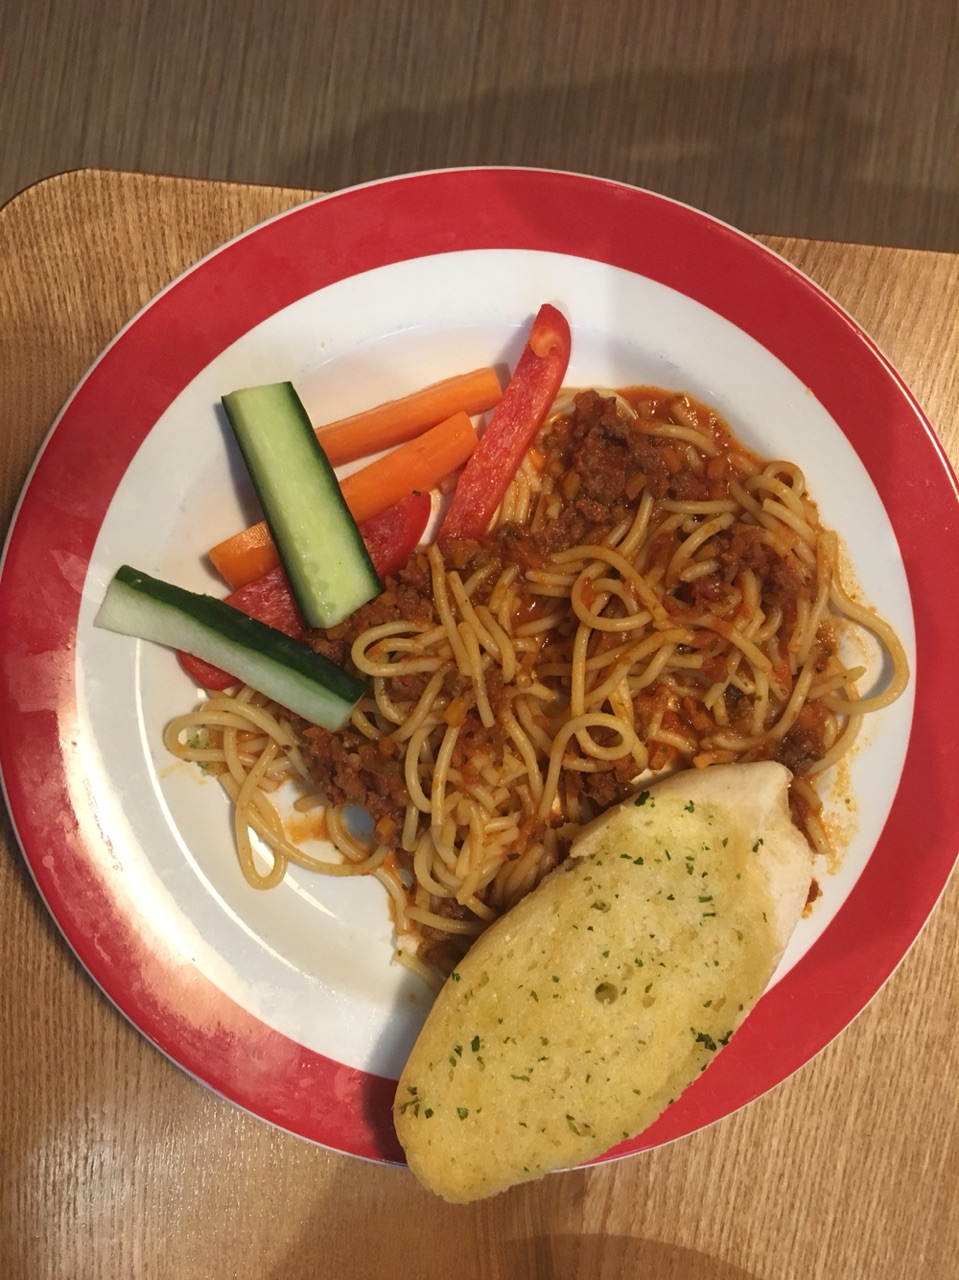 Kids Spaghetti Bolognese at the Cinder Path